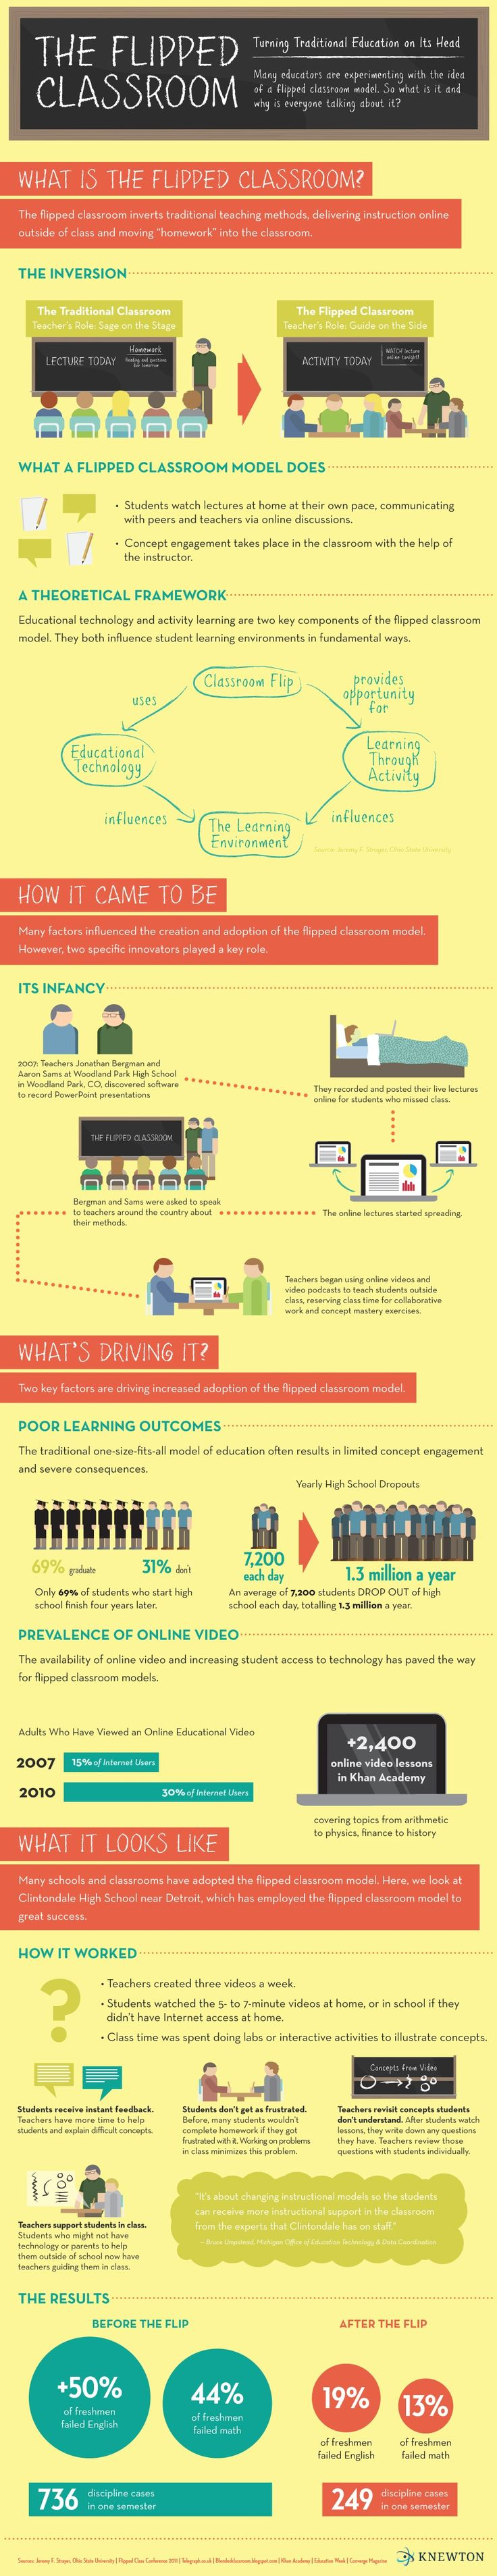 Should you Flip your Classroom? #edtech #edchat [infographic]